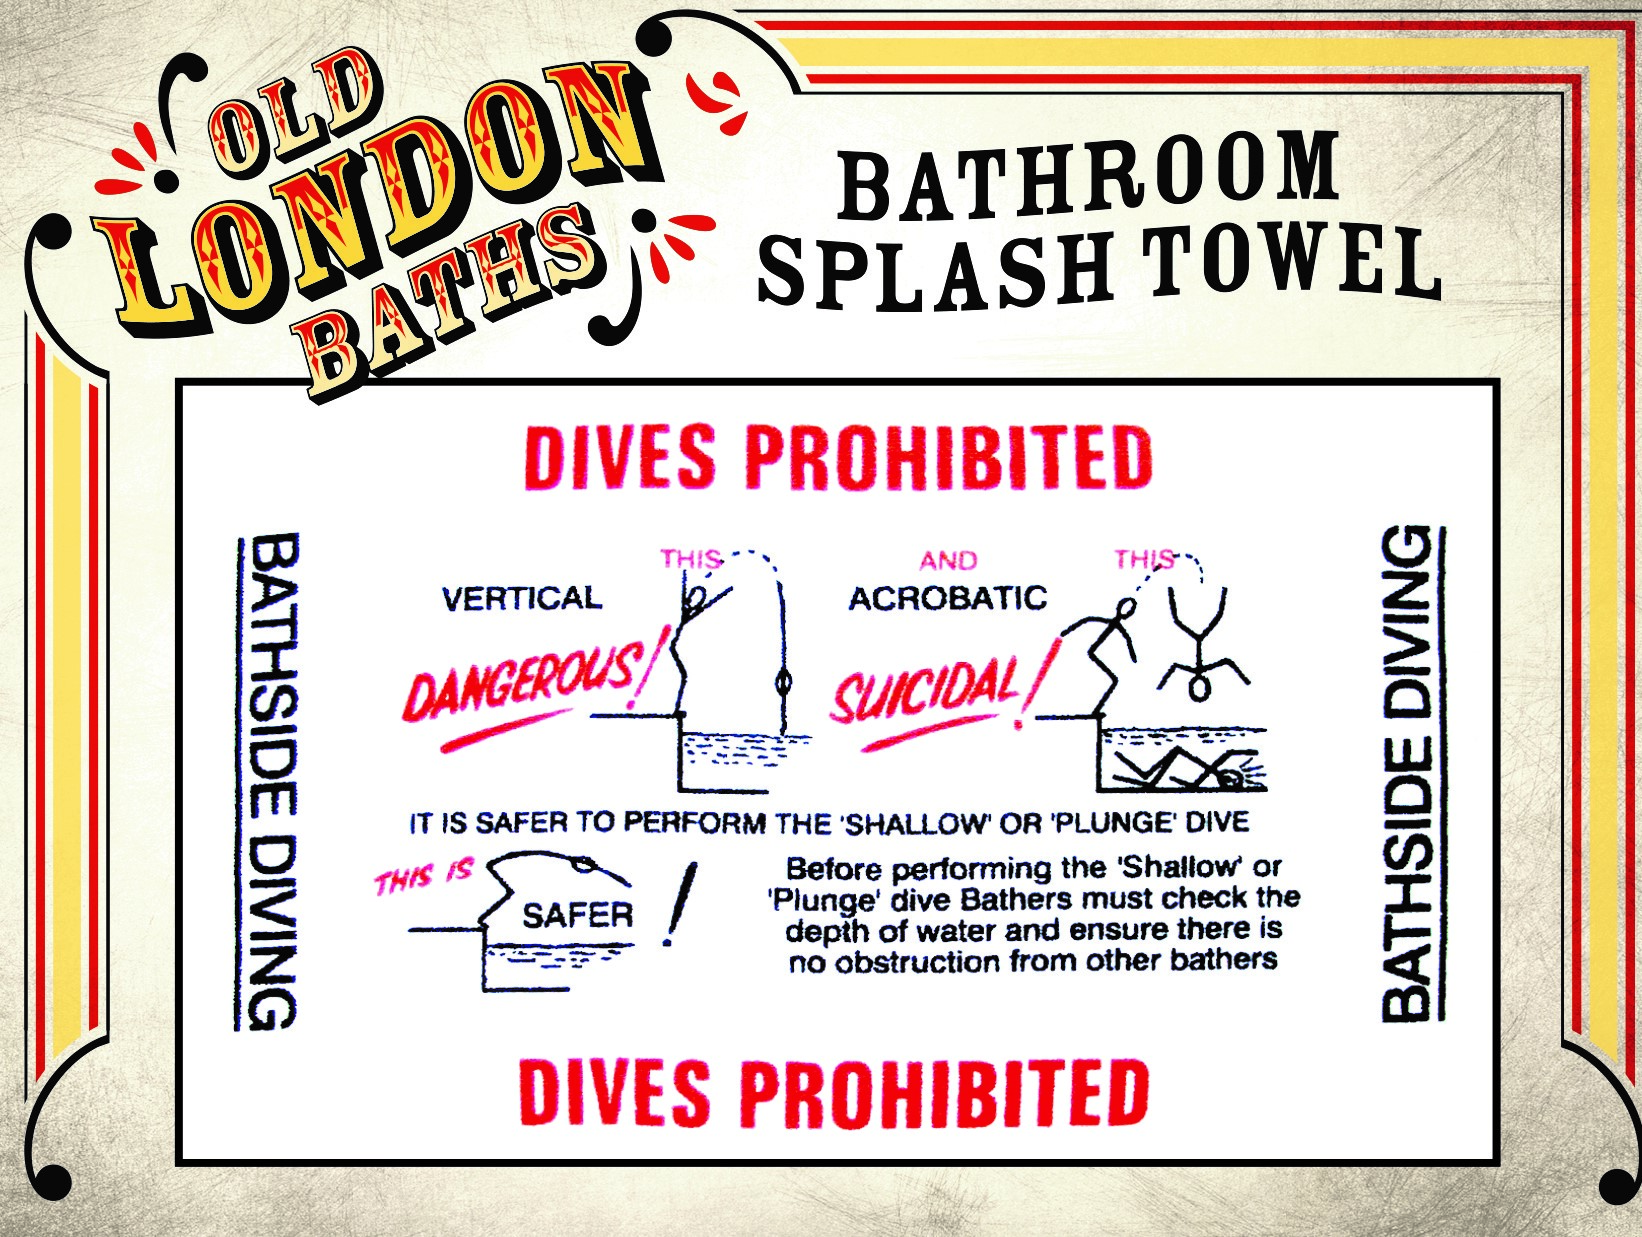 EXCLUSIVE Old London Baths stylish retro cotton shower/bath splash mat